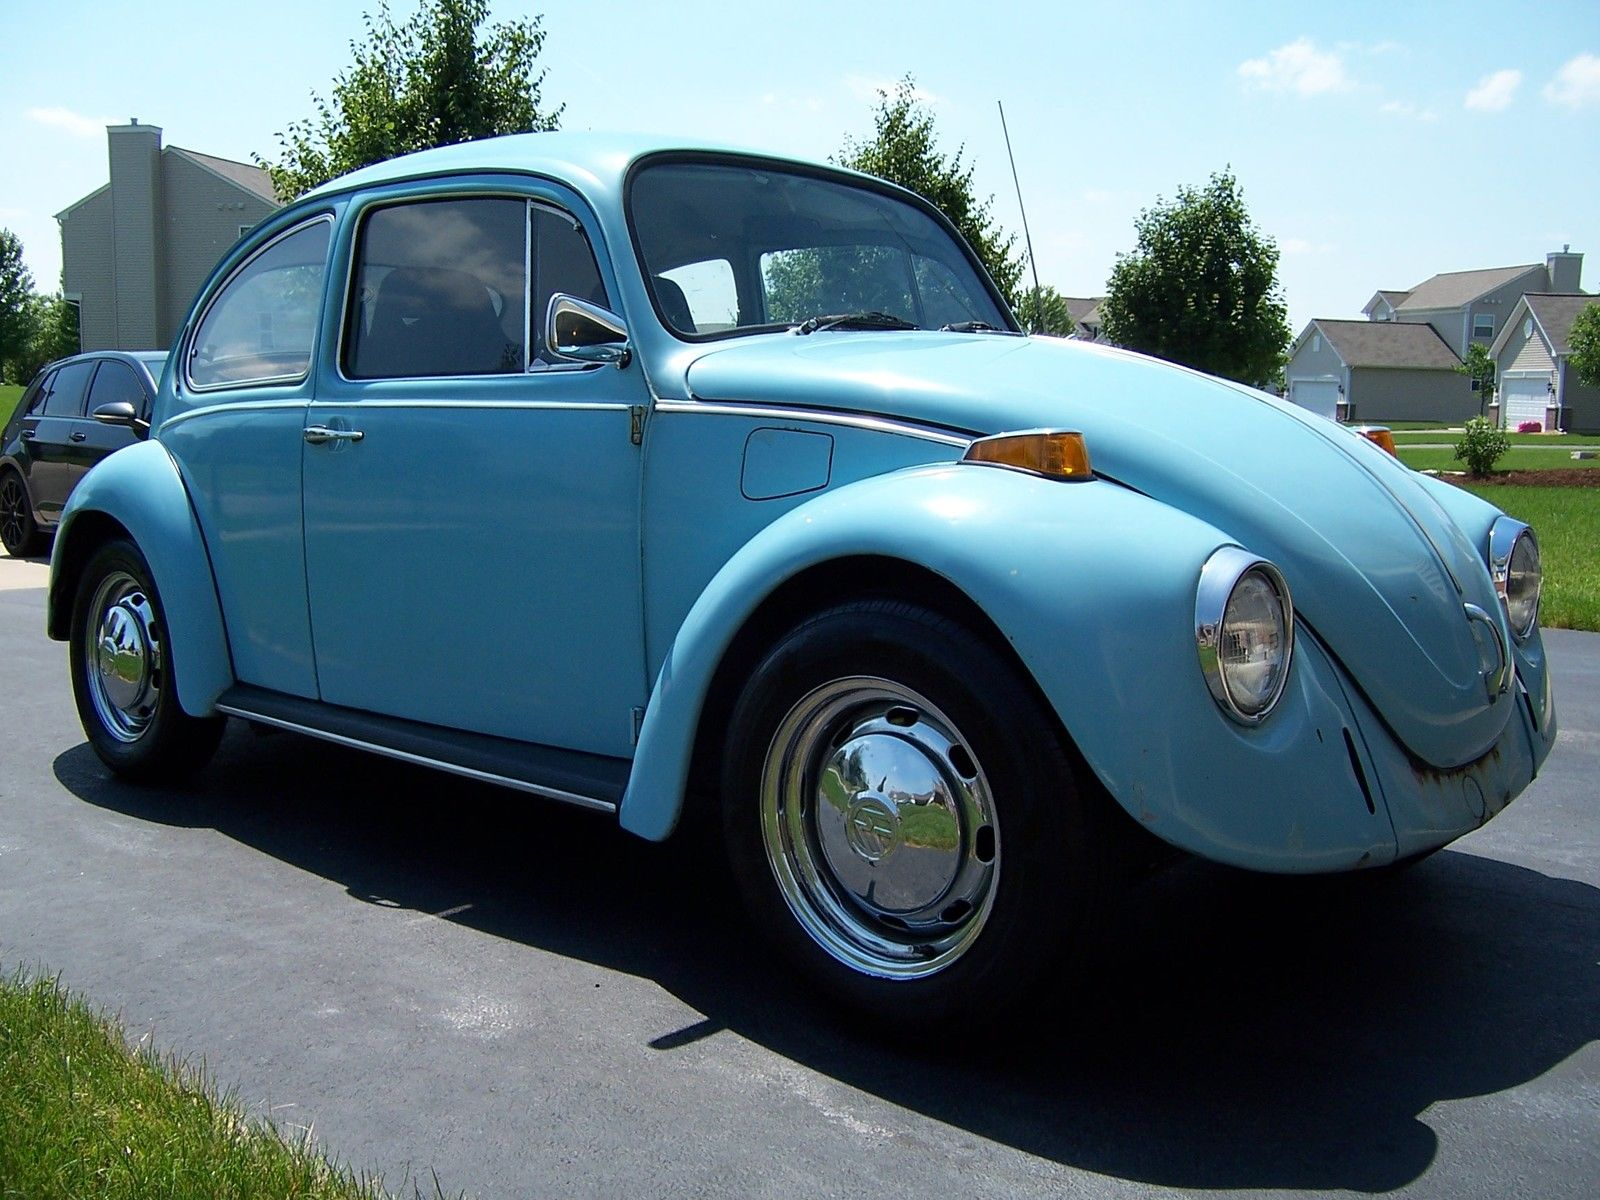 1971 Beetle With A Subaru Ej20 Engine Swap Depot 69 Wiring Harness Diagrams Although This Volkswagen Is Still Powered By Flat Four The Engines Displacement And Output Has Increased Instead Of Factory German